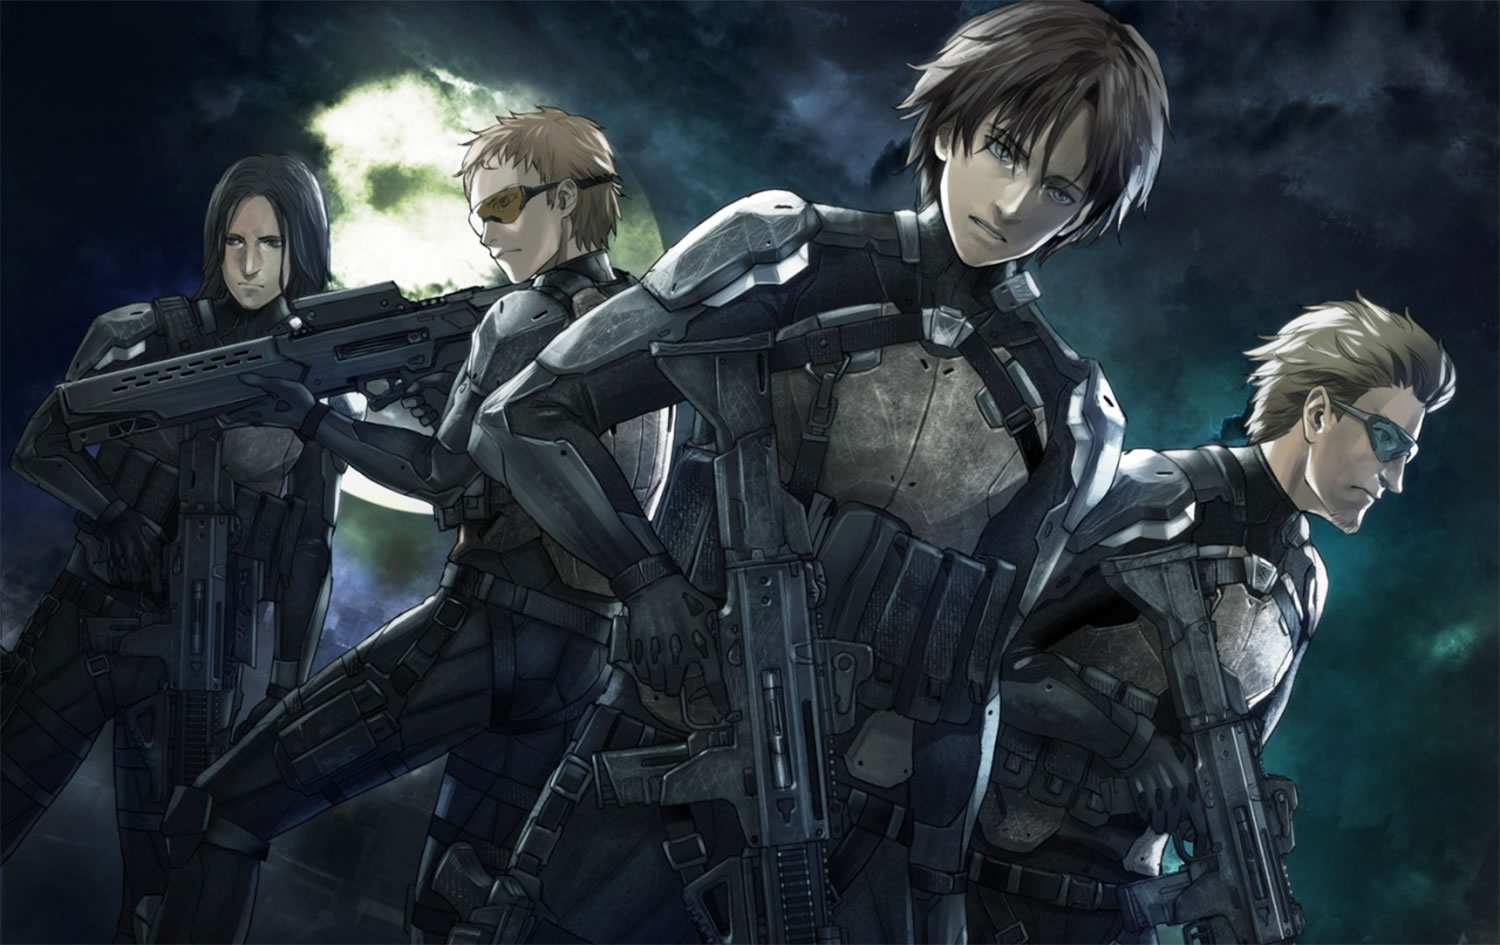 Sci Fi Men In Space Suits With Weapons Genocidal Organ